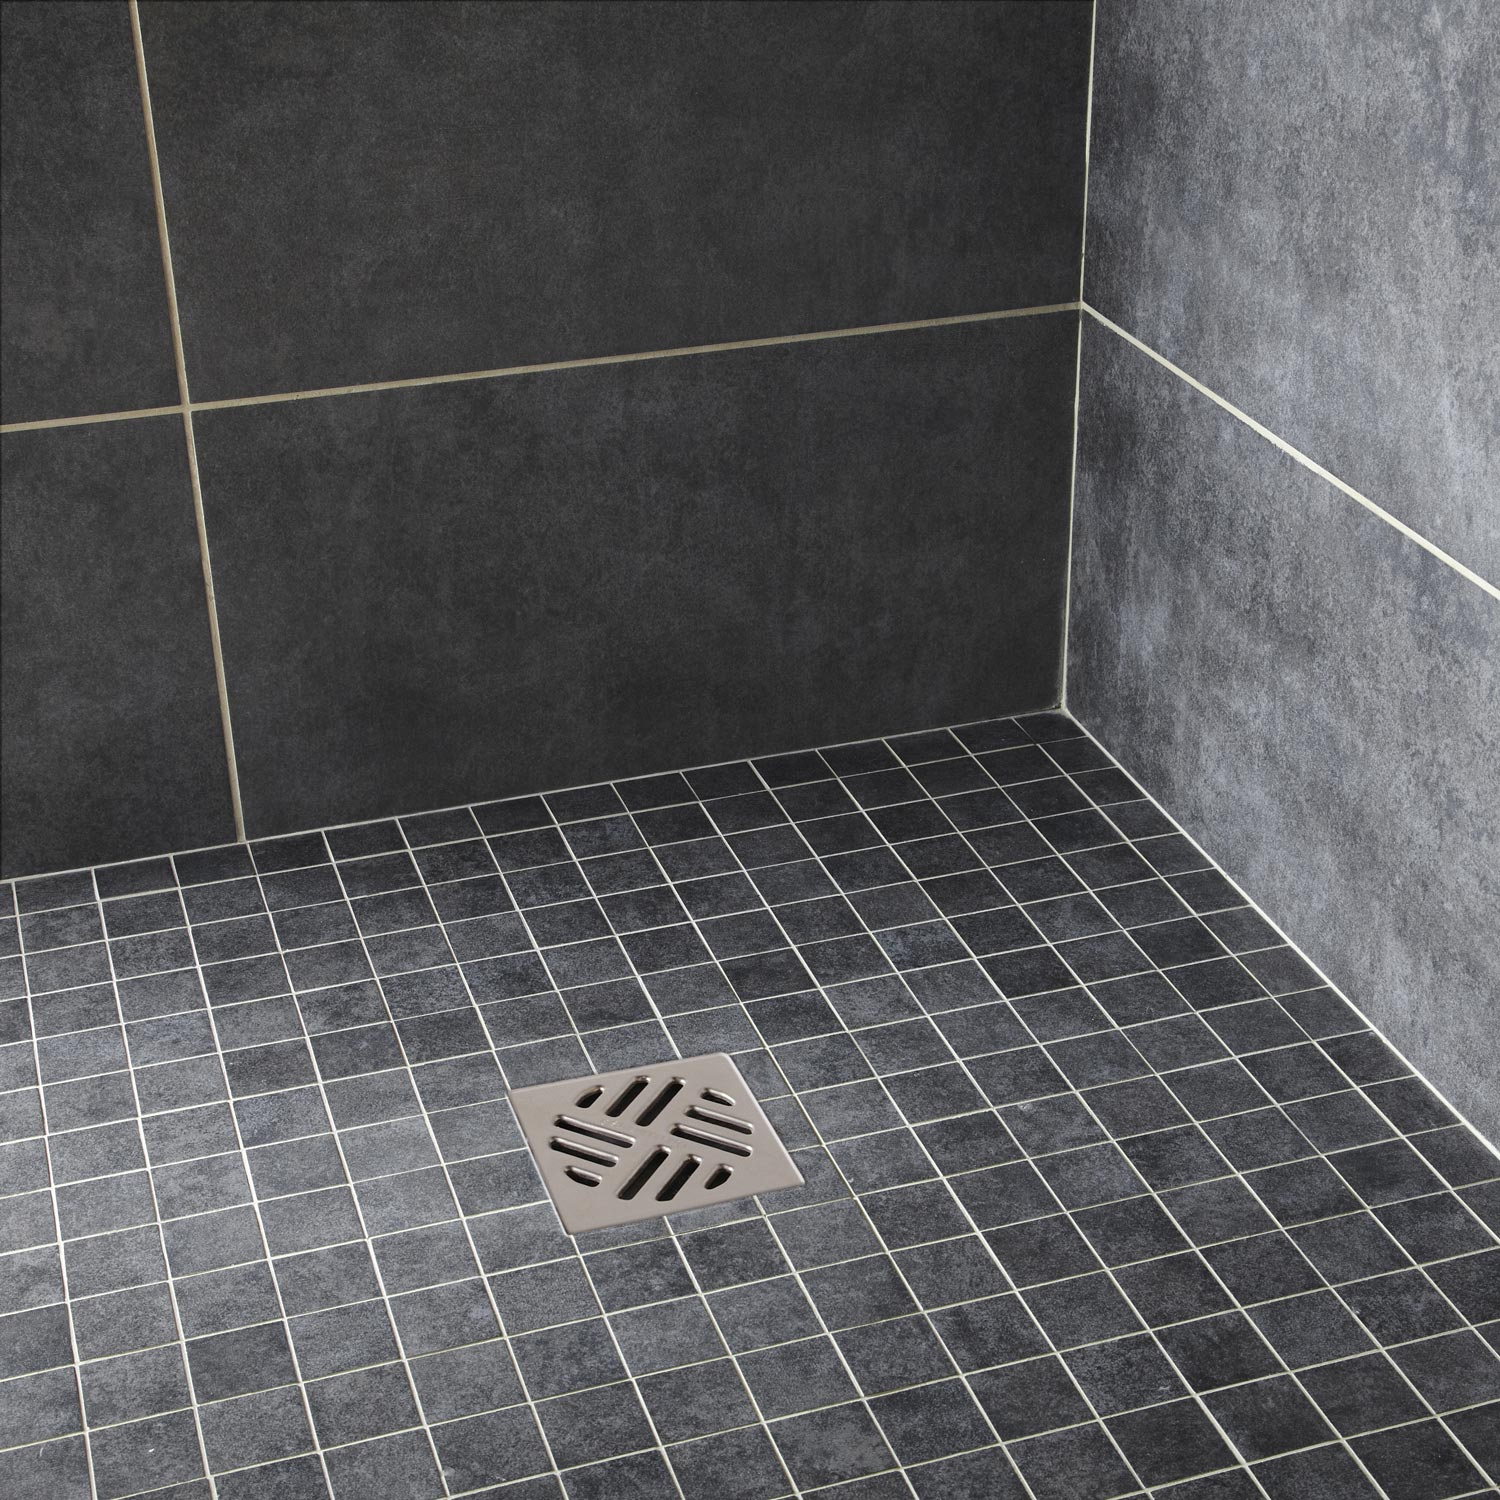 Salle de bain travertin leroy merlin for Carrelage mosaique sol salle de bain